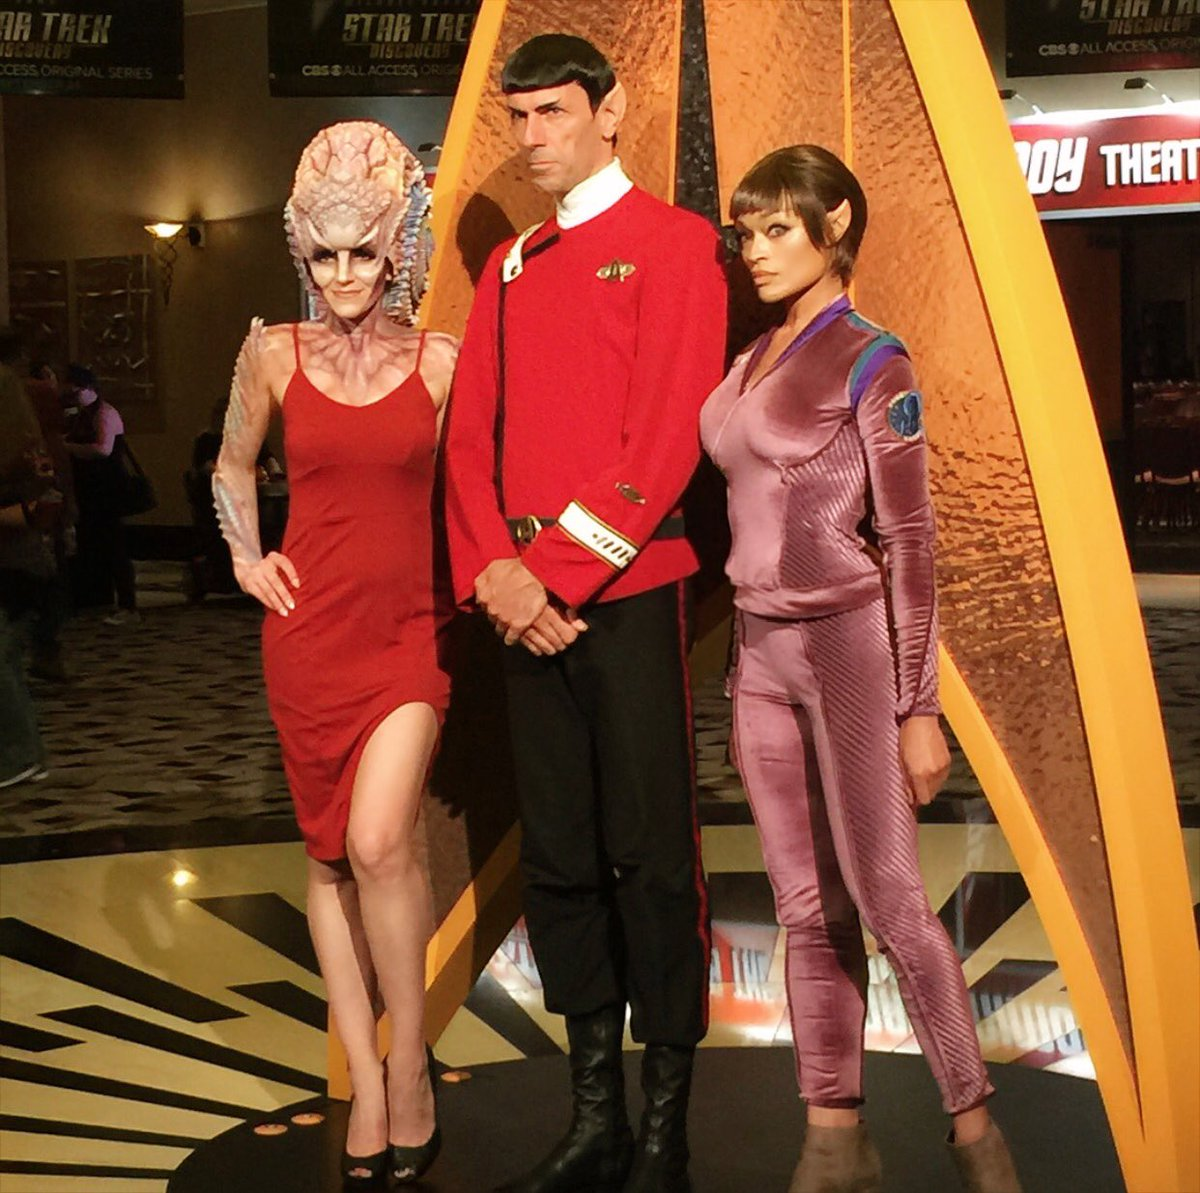 Natalia, Spock and T'Pol.  Generations of @StarTrek